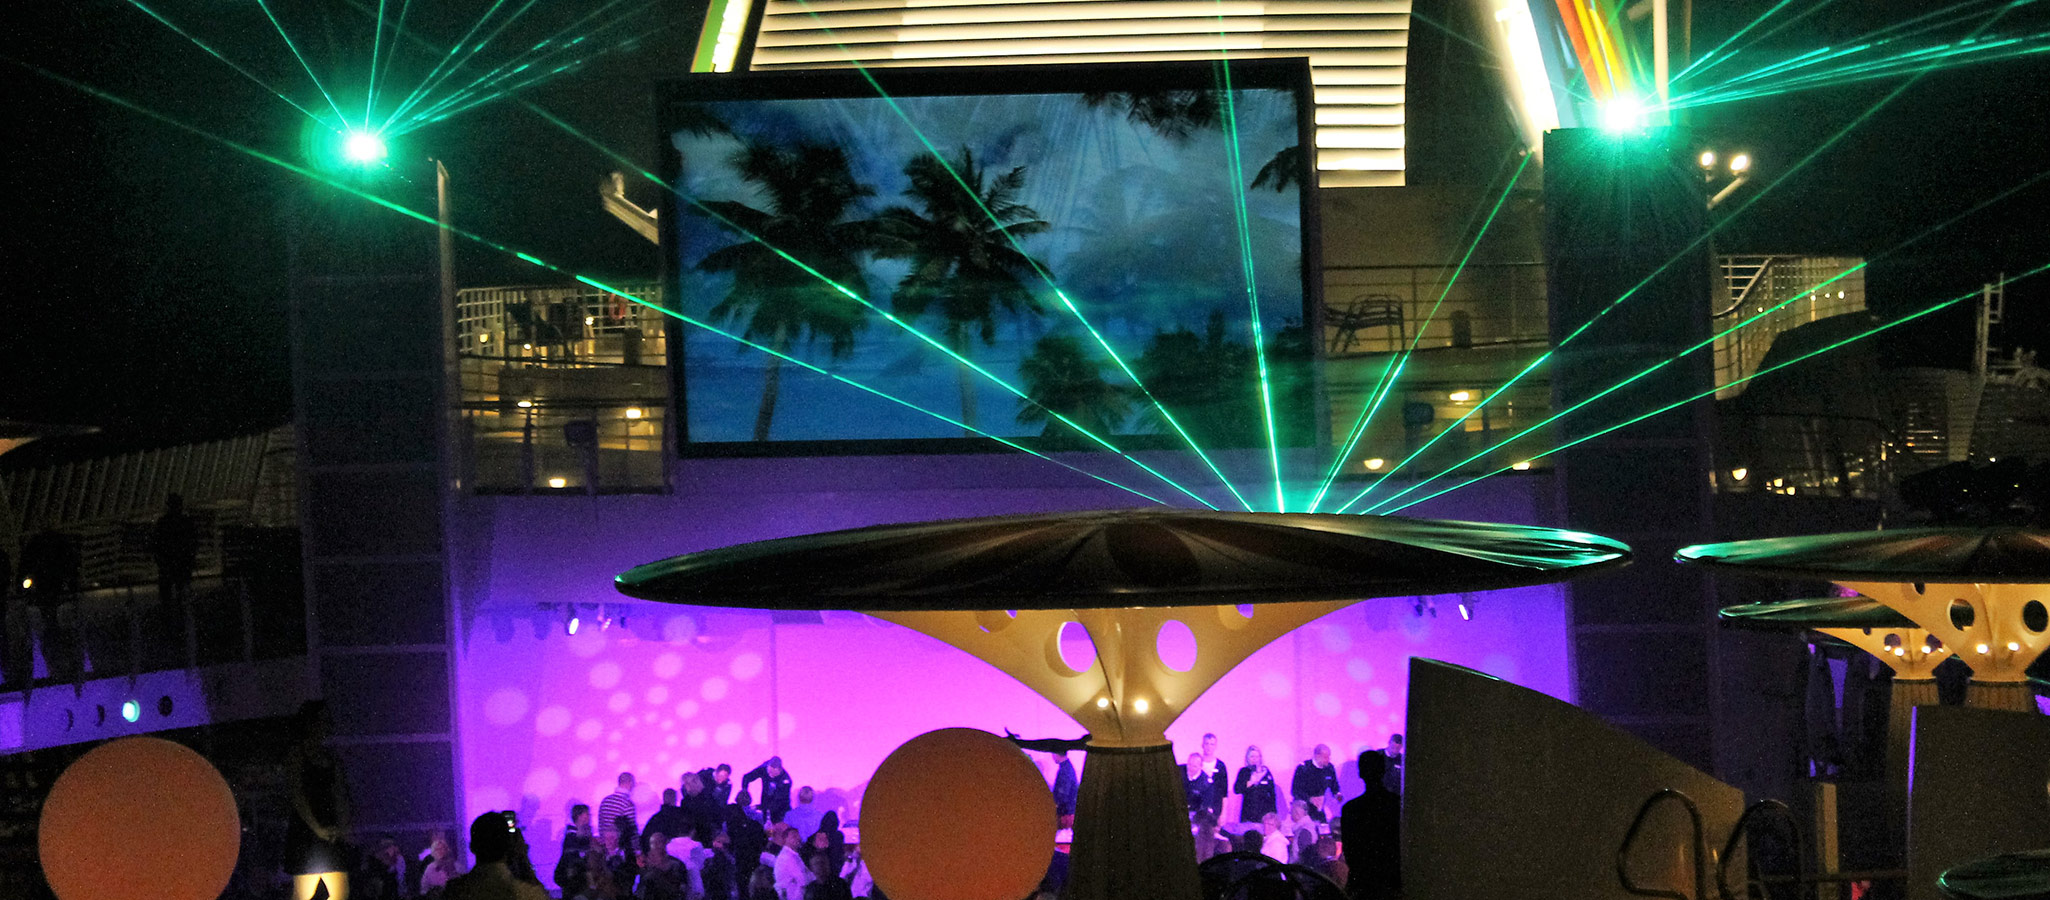 Light and sound technology at its very best, large screens and, on some ships, even laser show systems allow for the perfect staging of your event.